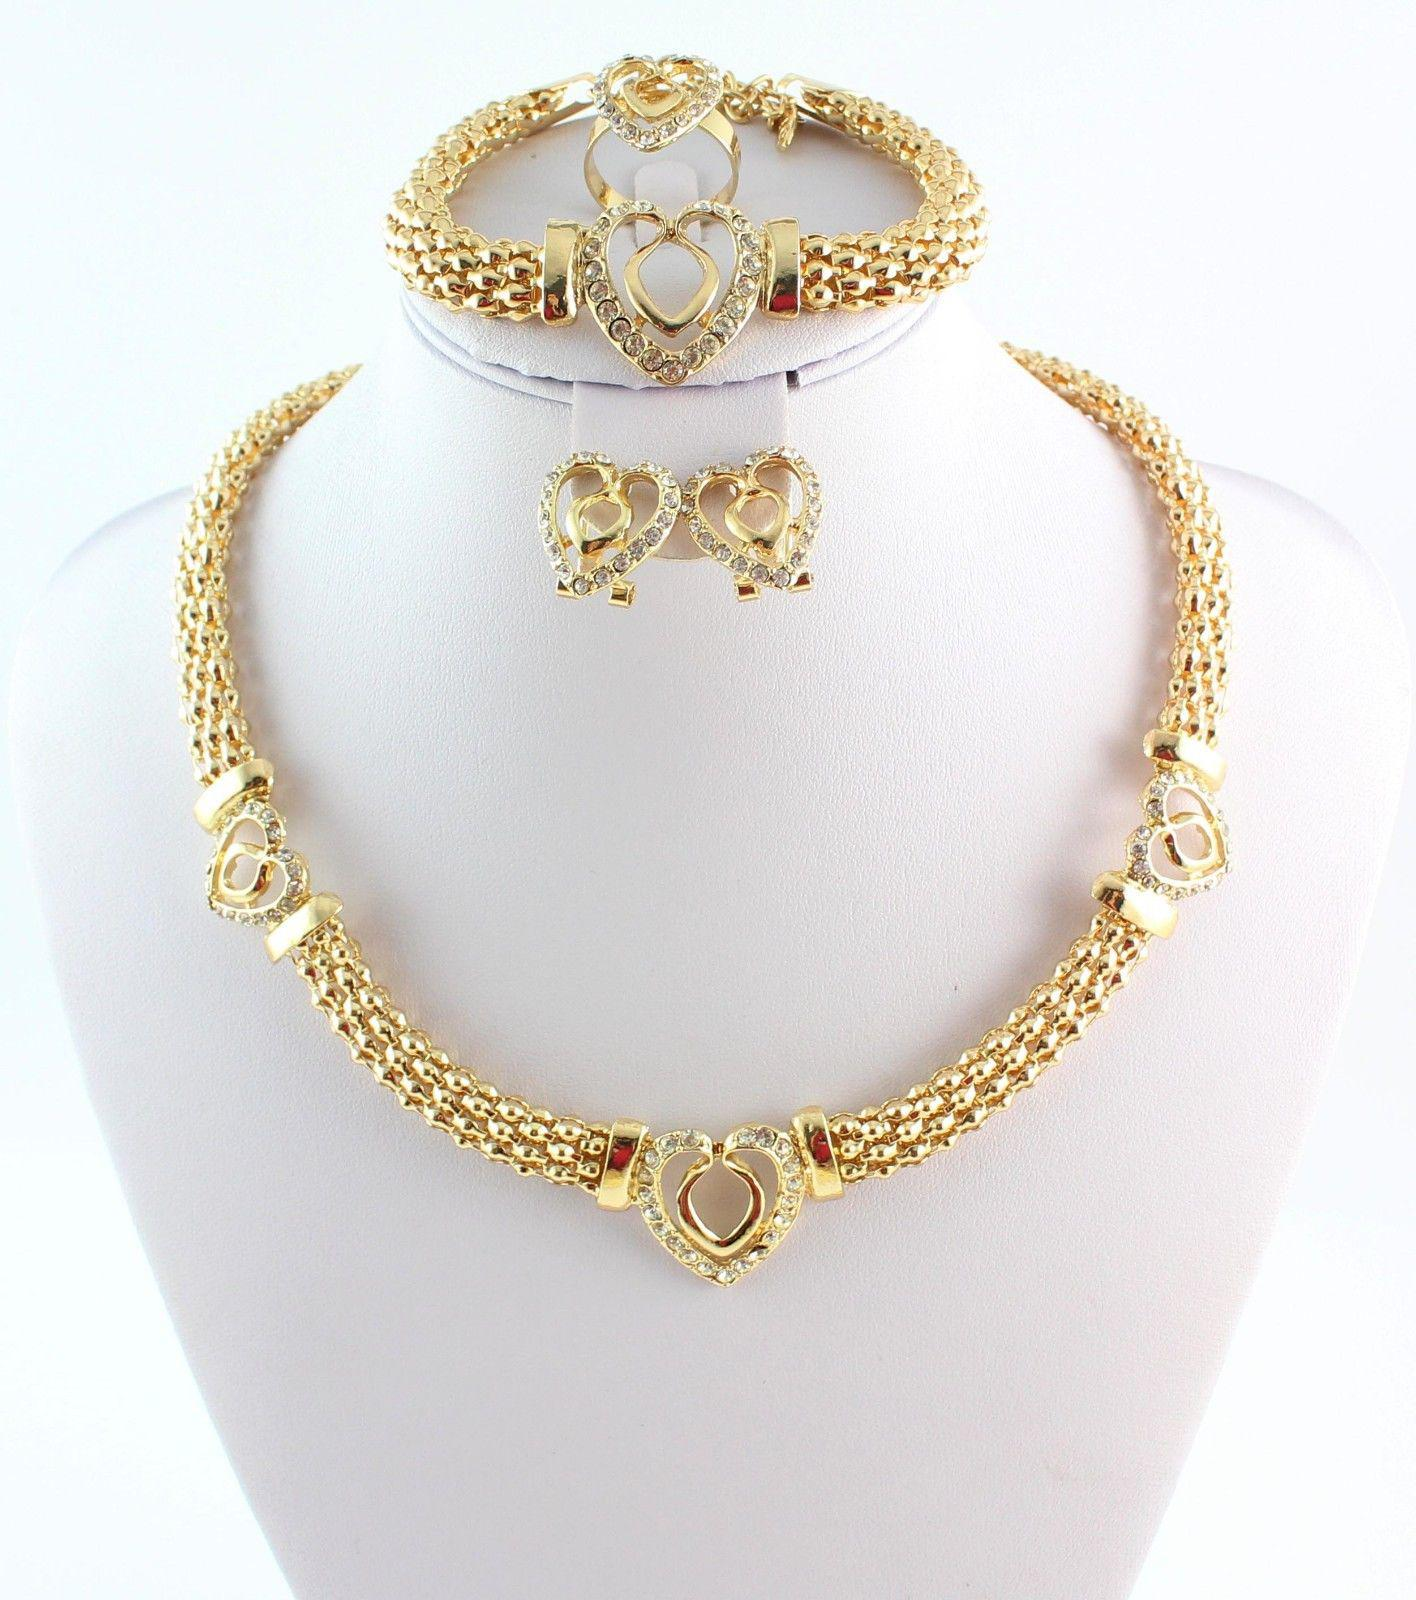 9233e9fe980 2019 Hot Sale Heart Design Costume Necklaces Bracelets Earrings Rings Set  Fashion Top Quality African Gold Plated Women Bridal Jewelry Sets From  Minmin2014